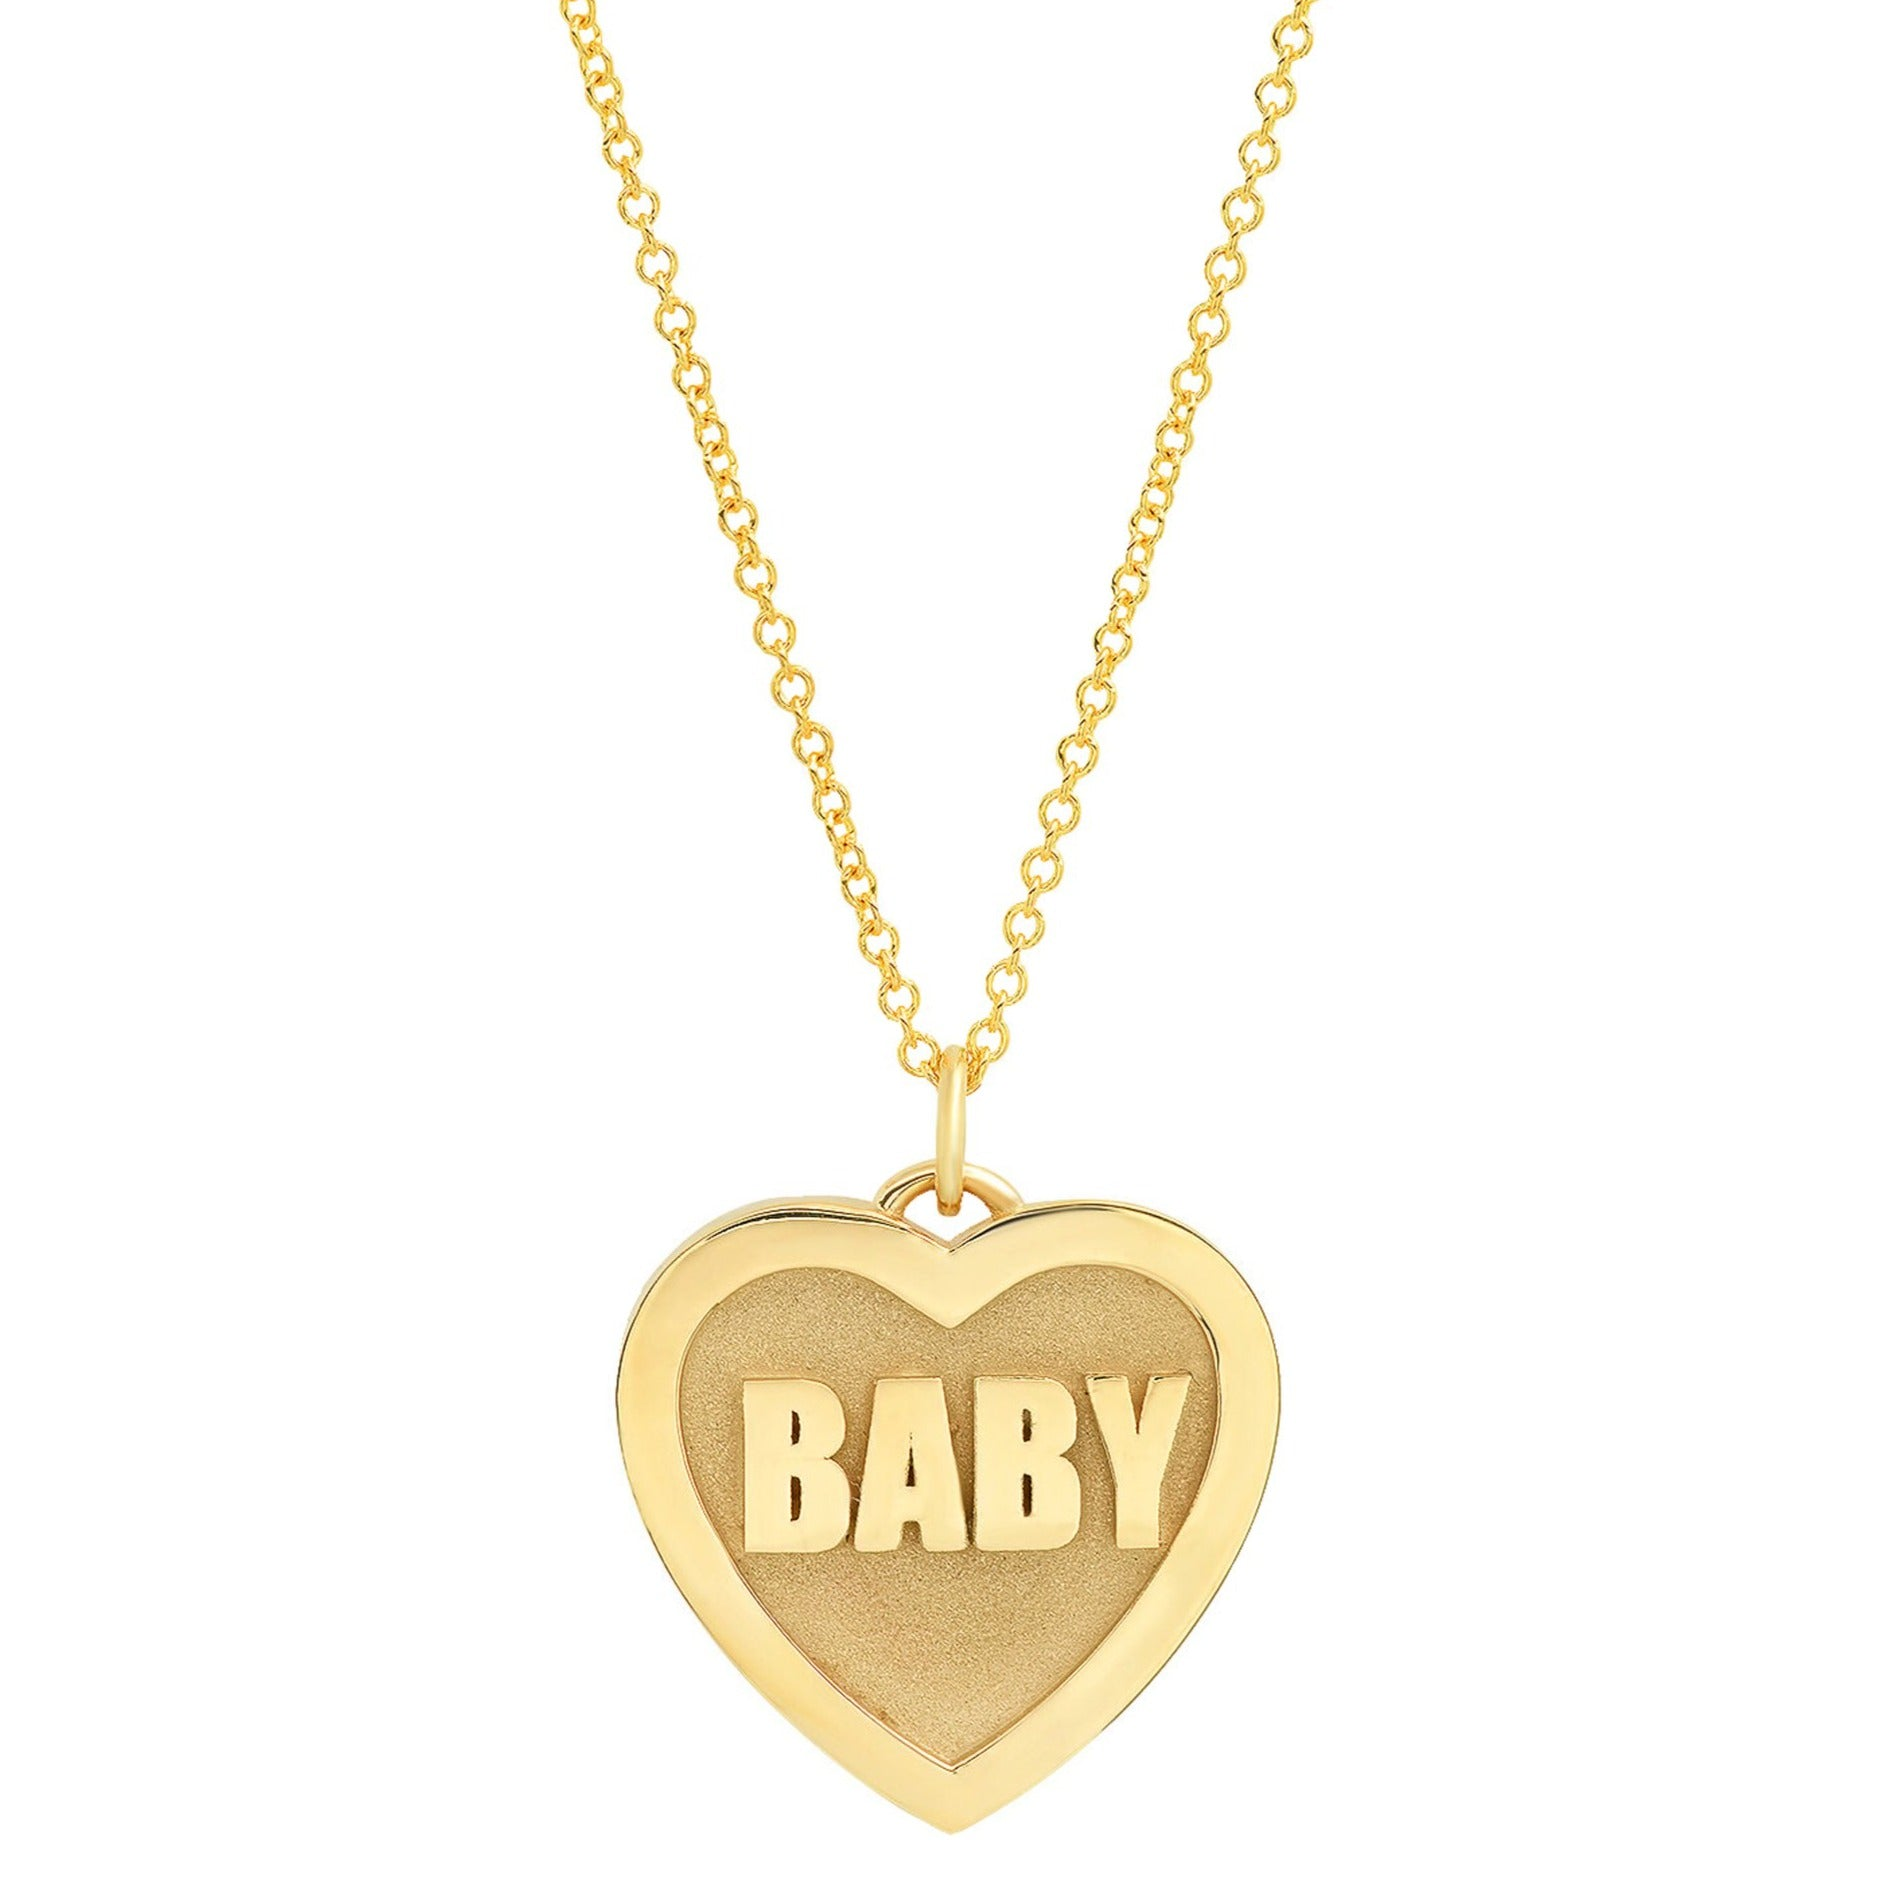 Established Jewelry Baby Heart Pendant Necklace - Necklaces - Broken English Jewelry